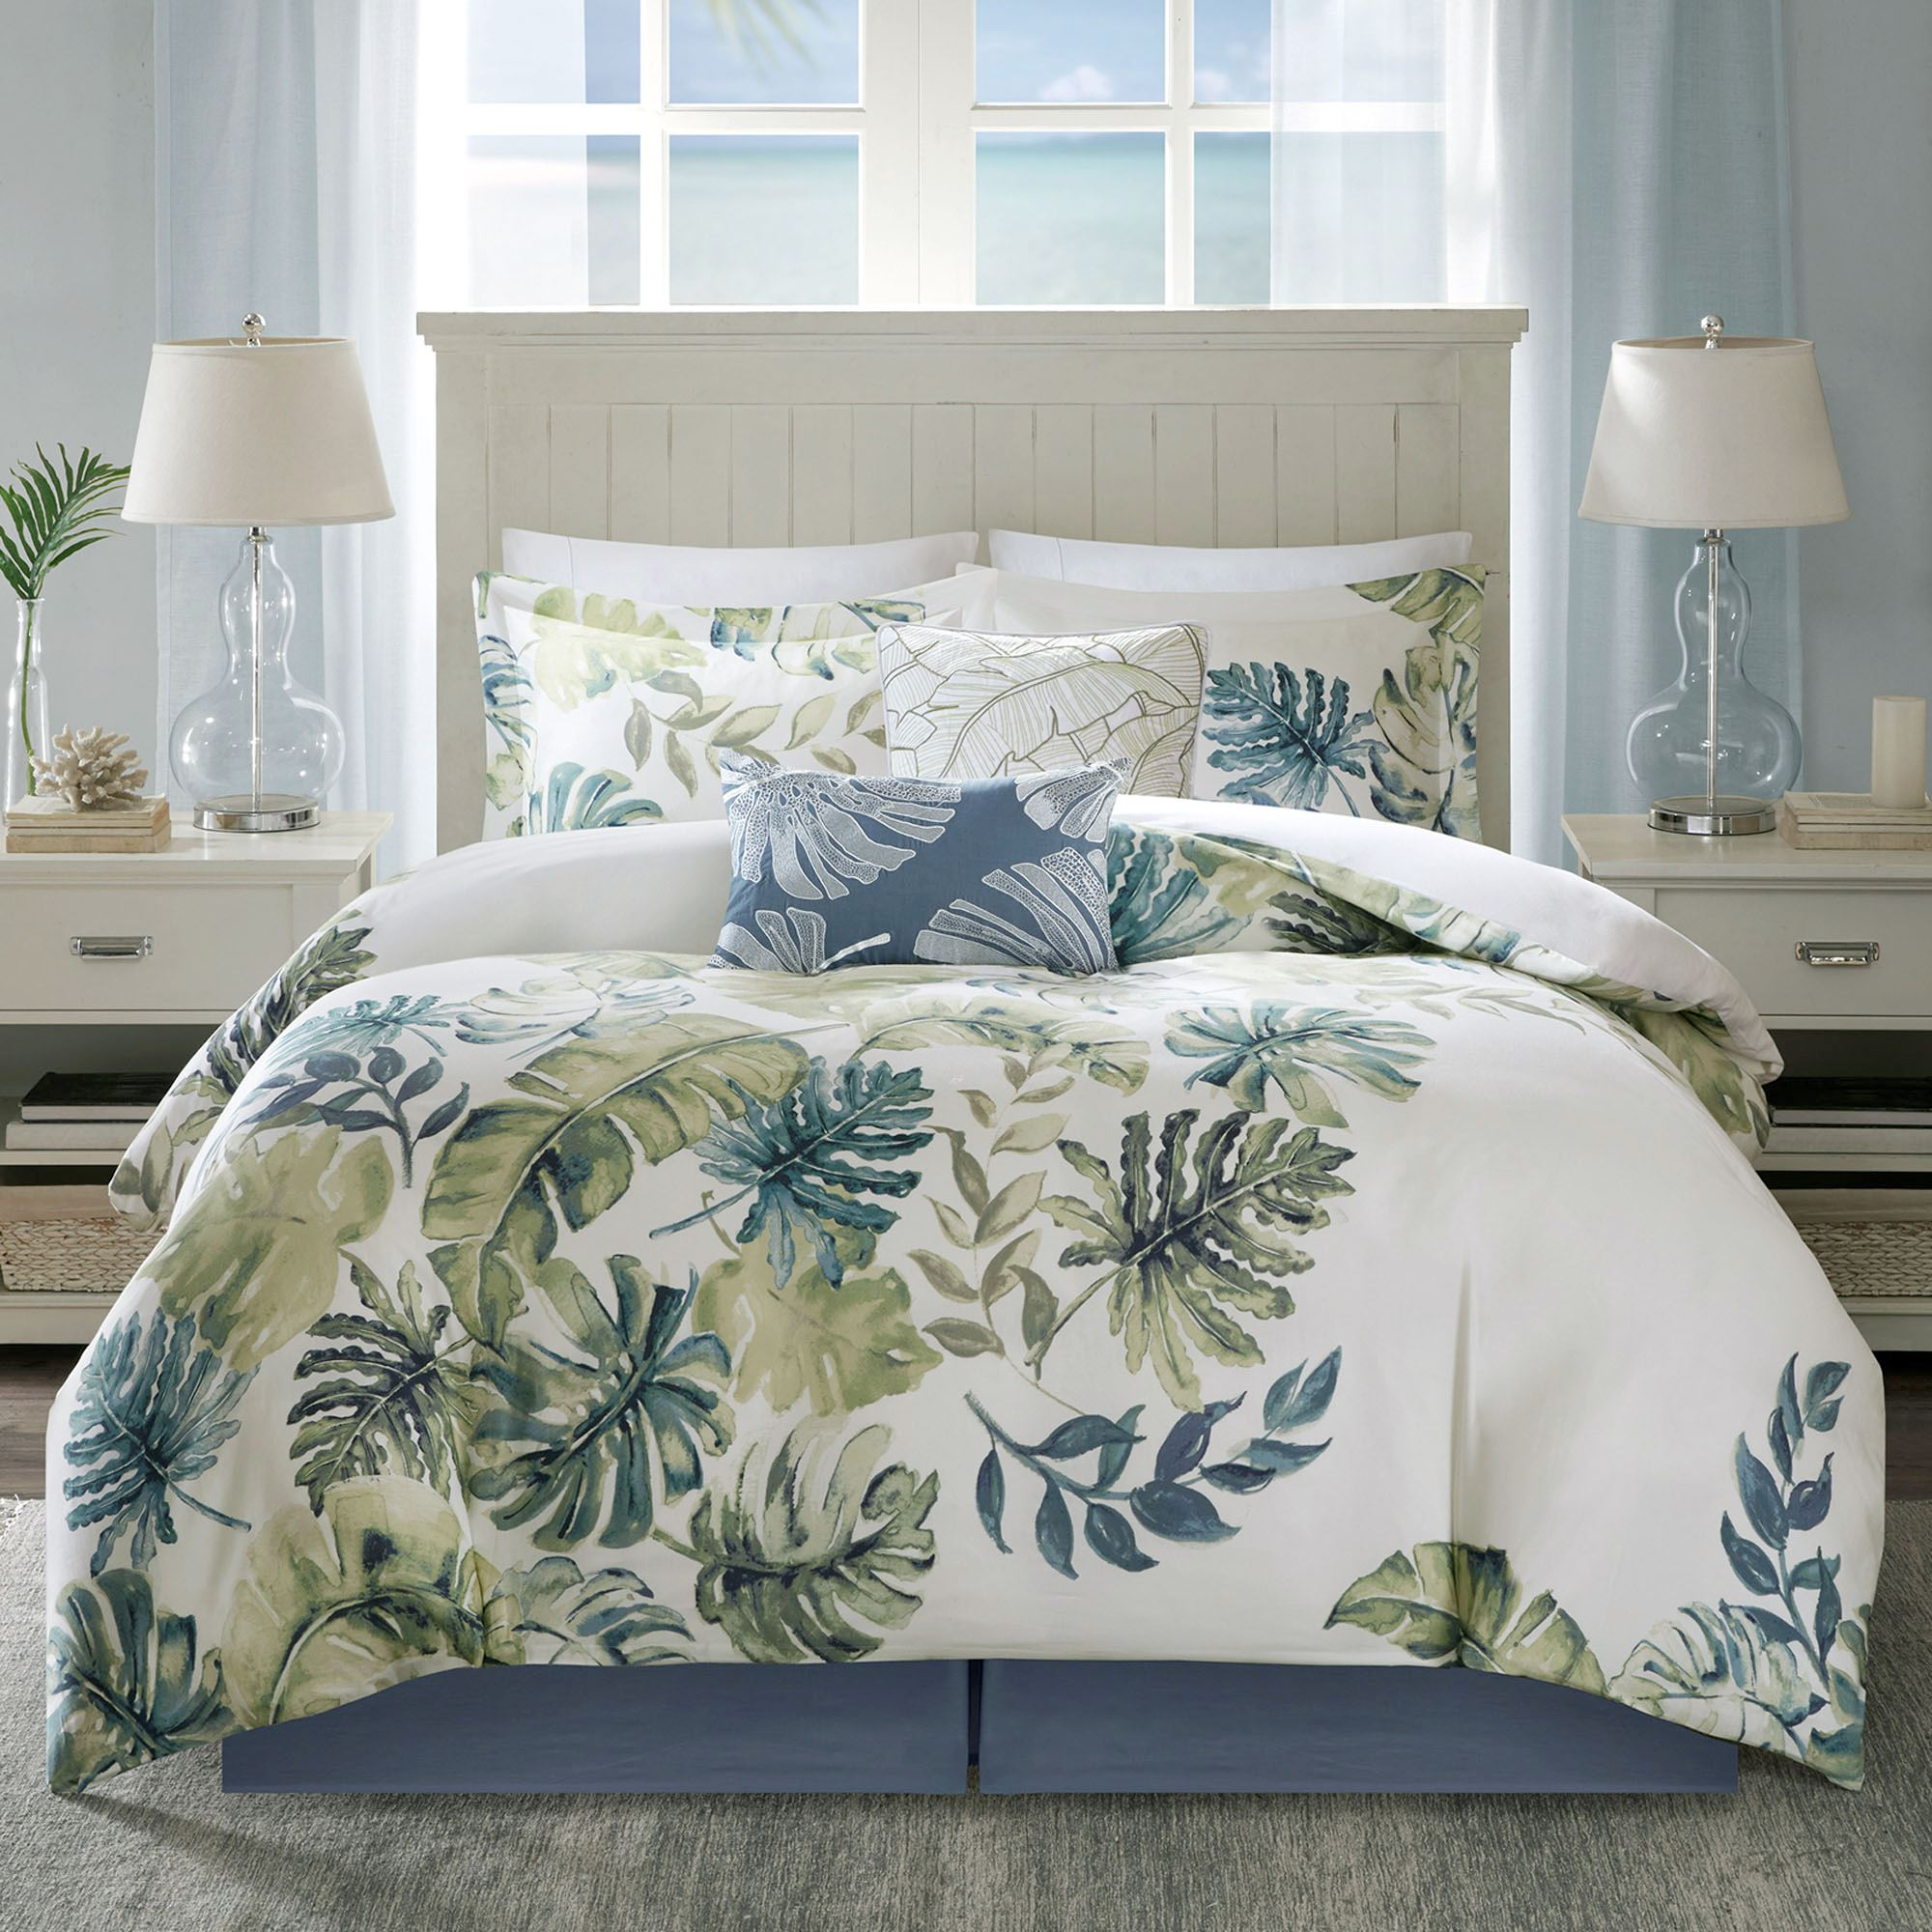 Lorelai Tropical 6 Pc Comforter Bed Set By Harbor House